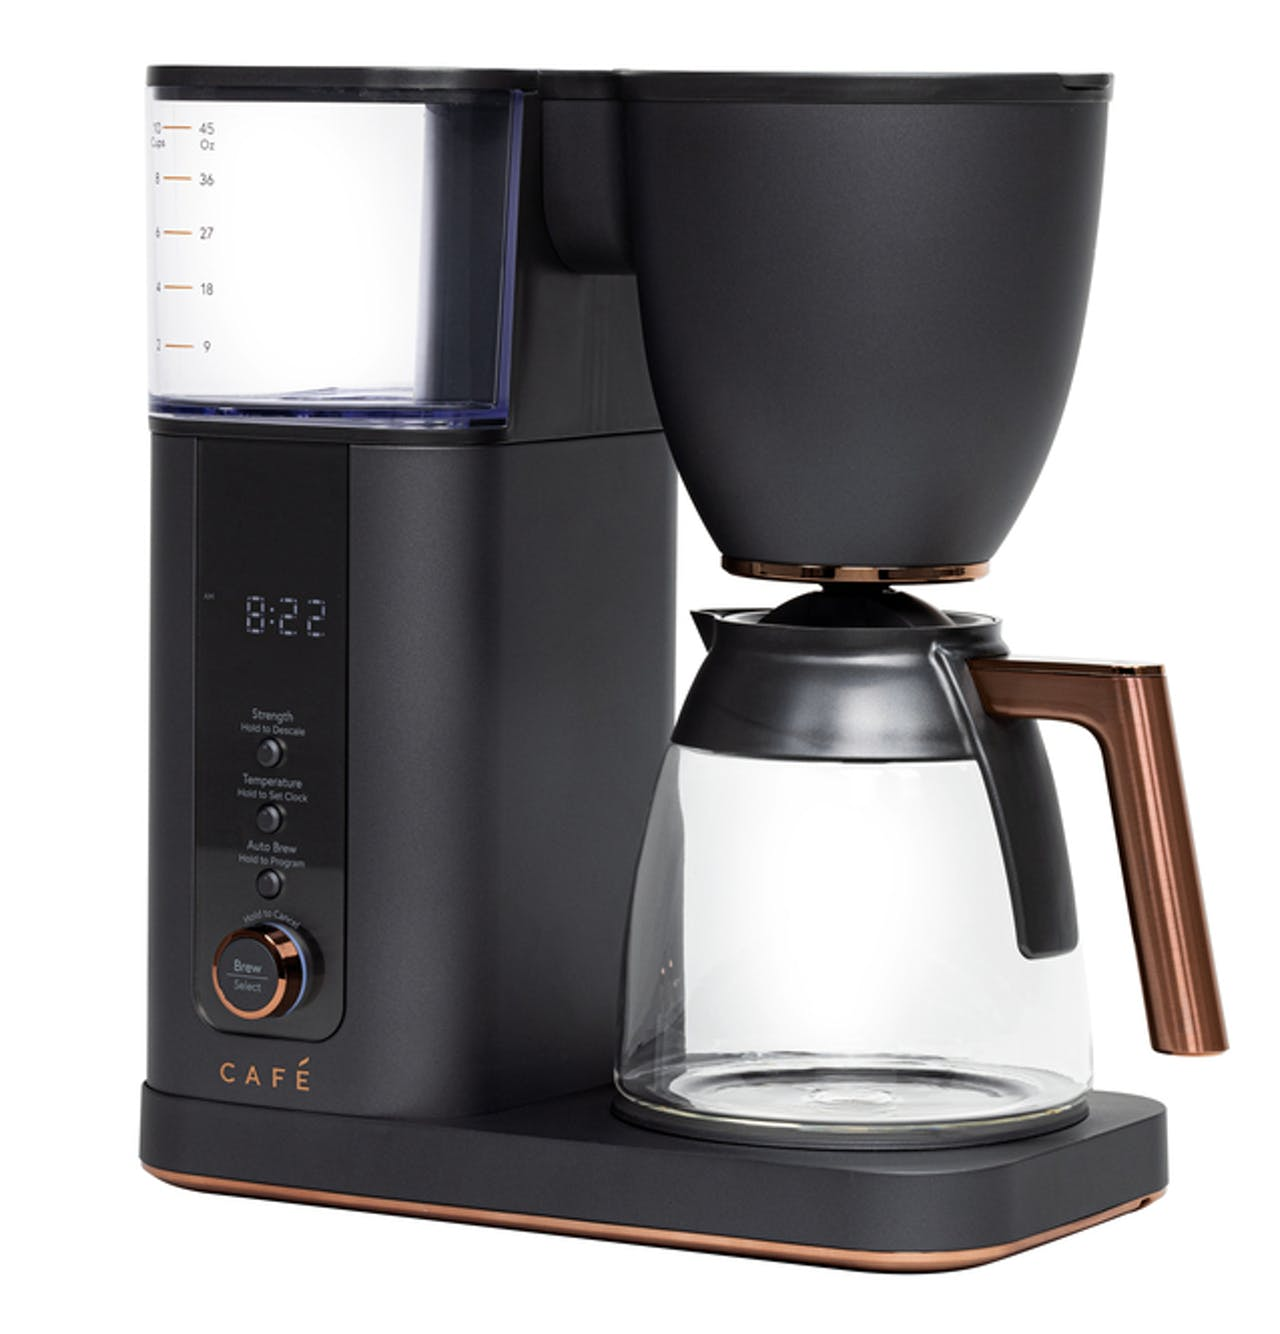 Café Specialty Drip Coffee Maker with Glass Carafe in Matte Black